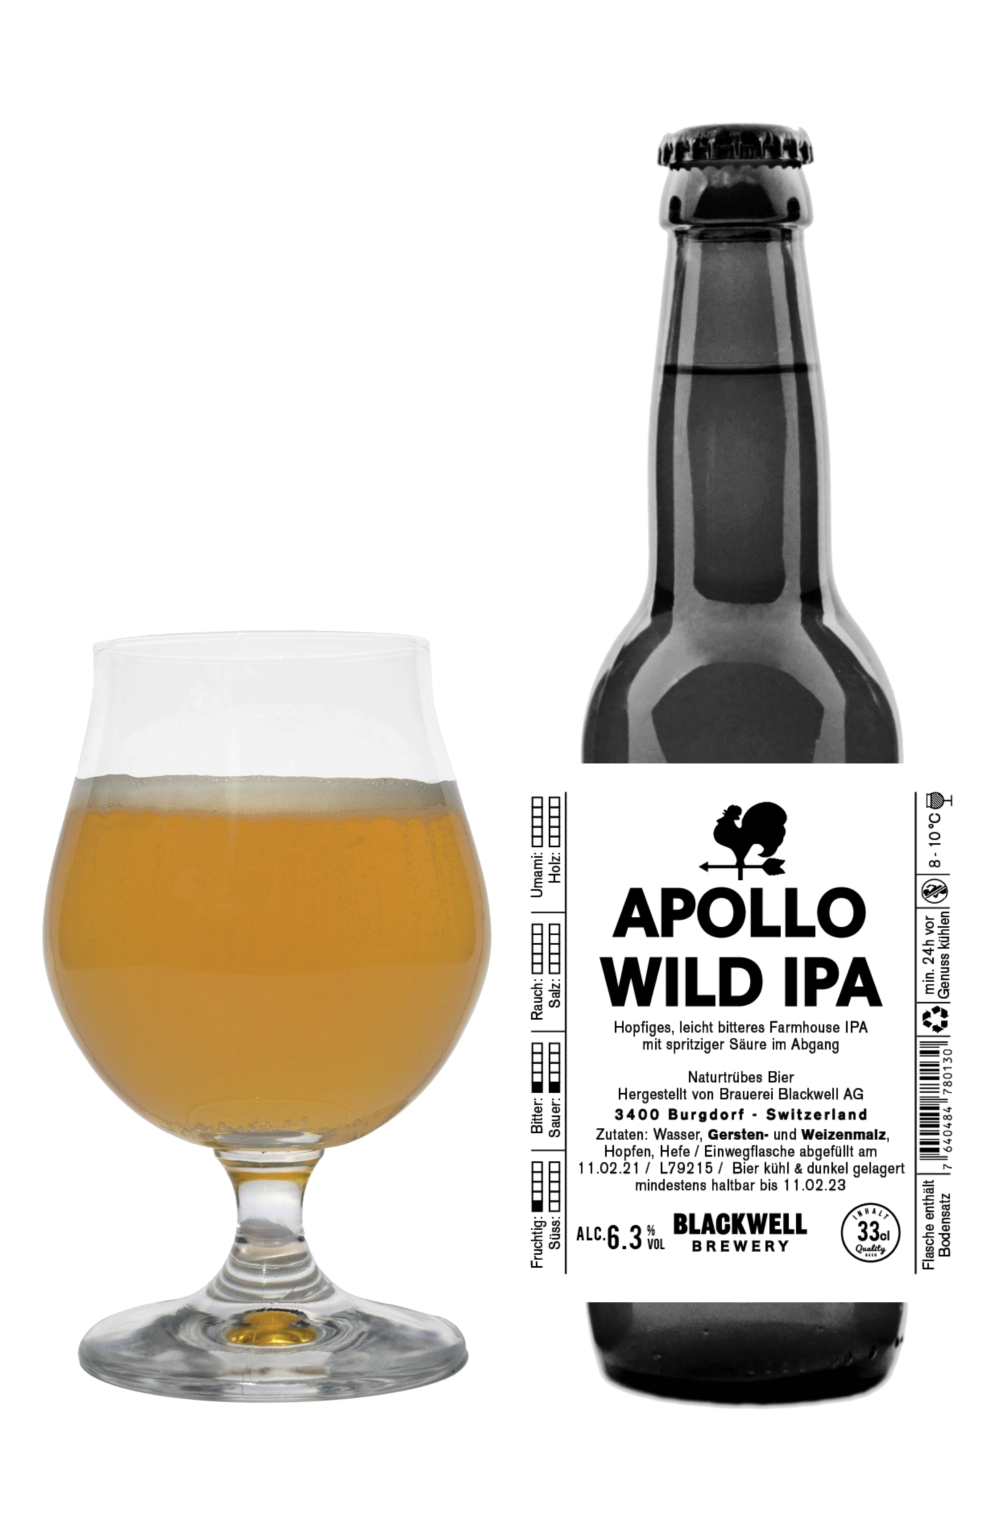 https://blackwellbrewery.ch/wp-content/uploads/2017/05/ApolloBlackwell-e1614258139836.png